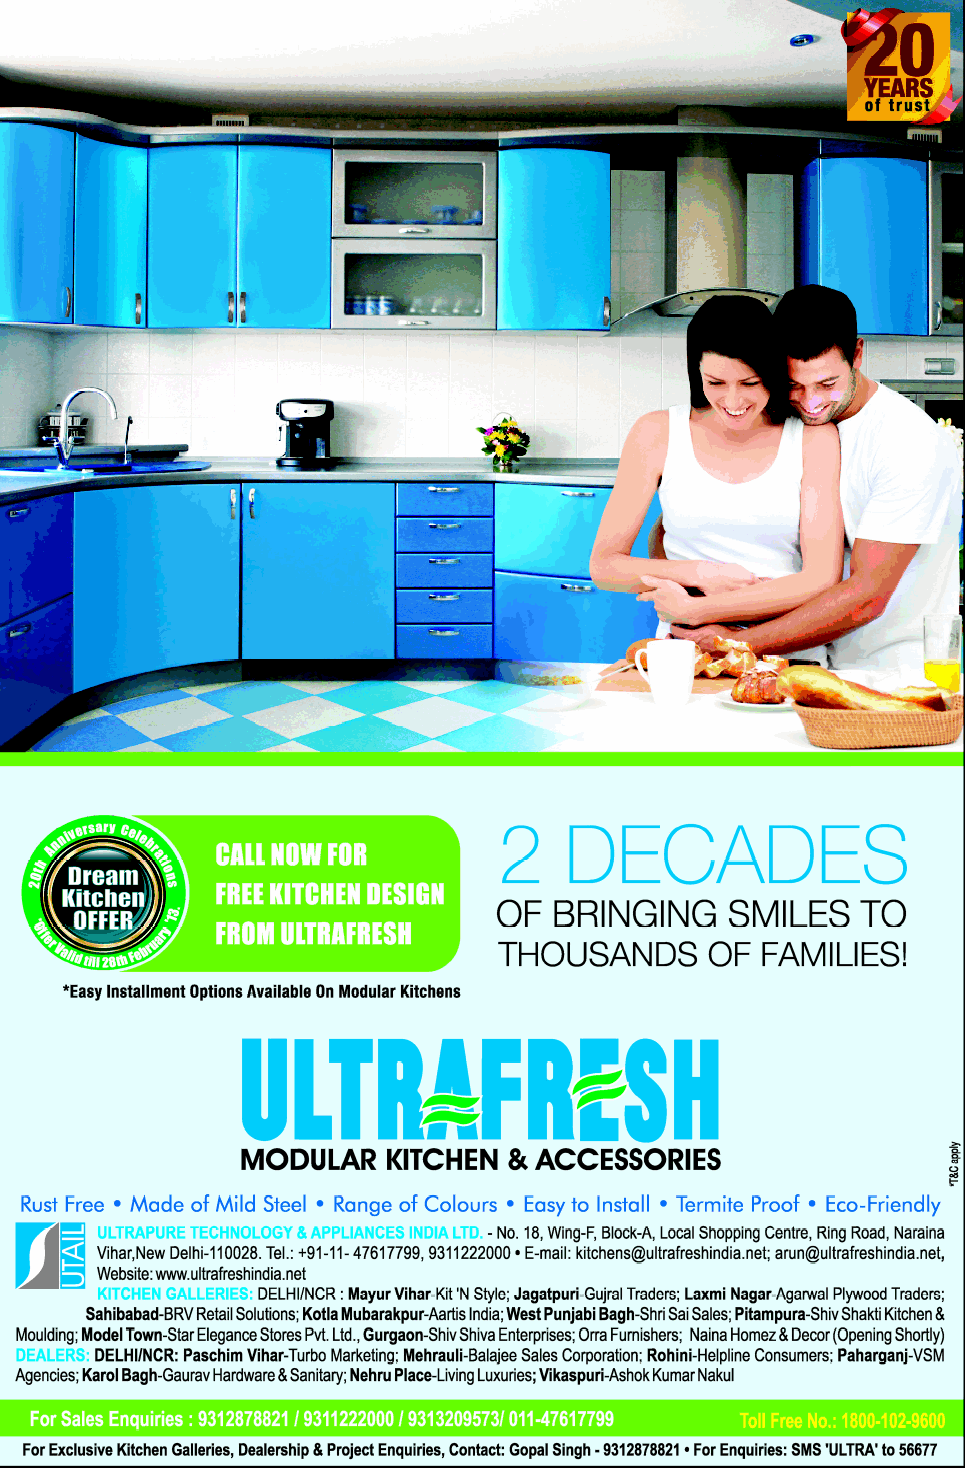 Ultrafresh Modular Kitchen - Dream Kitchen Offer / Mumbai, New Delhi ...